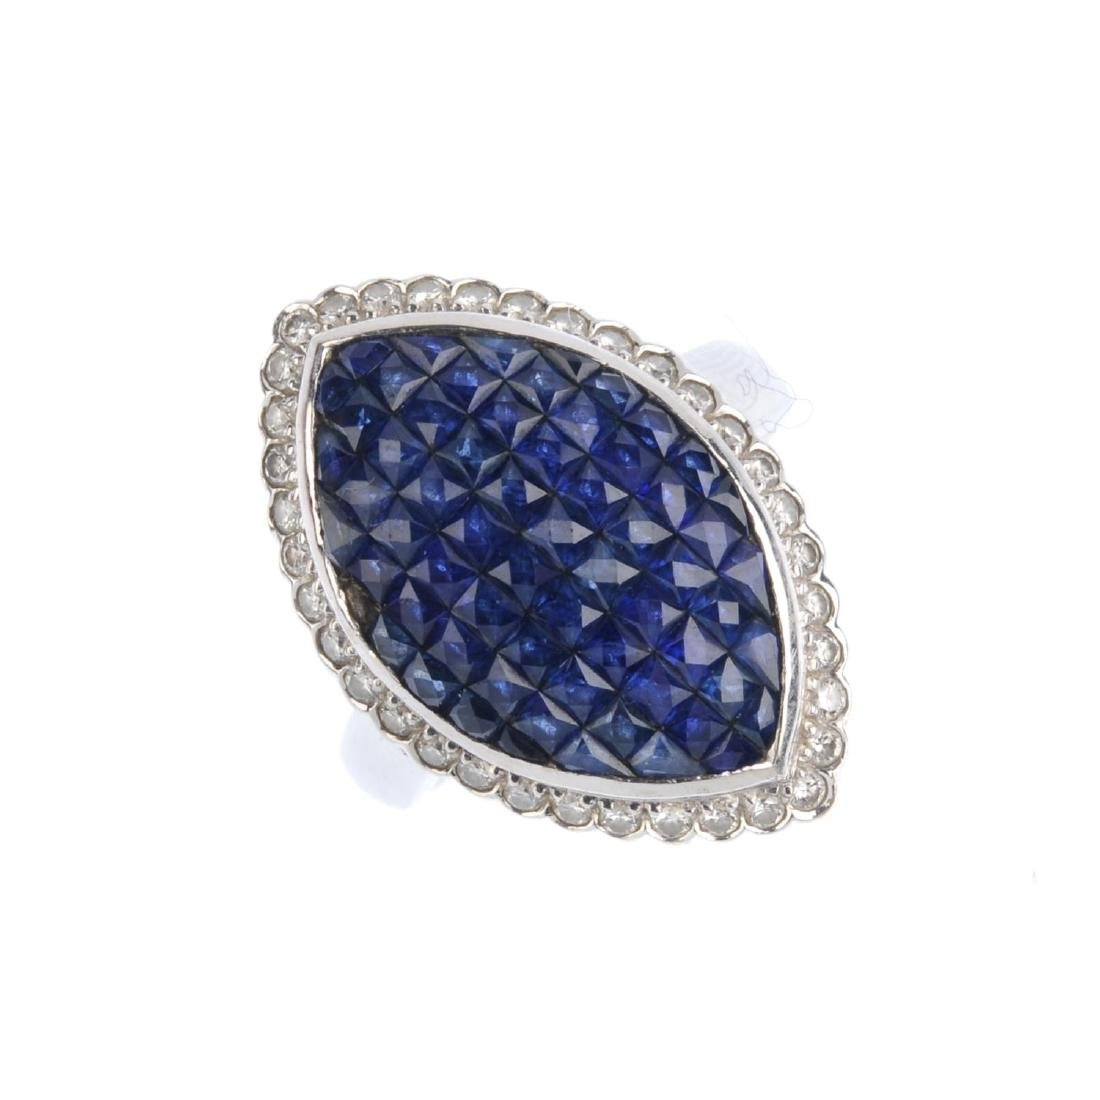 A sapphire and diamond dress ring. The calibre-cut